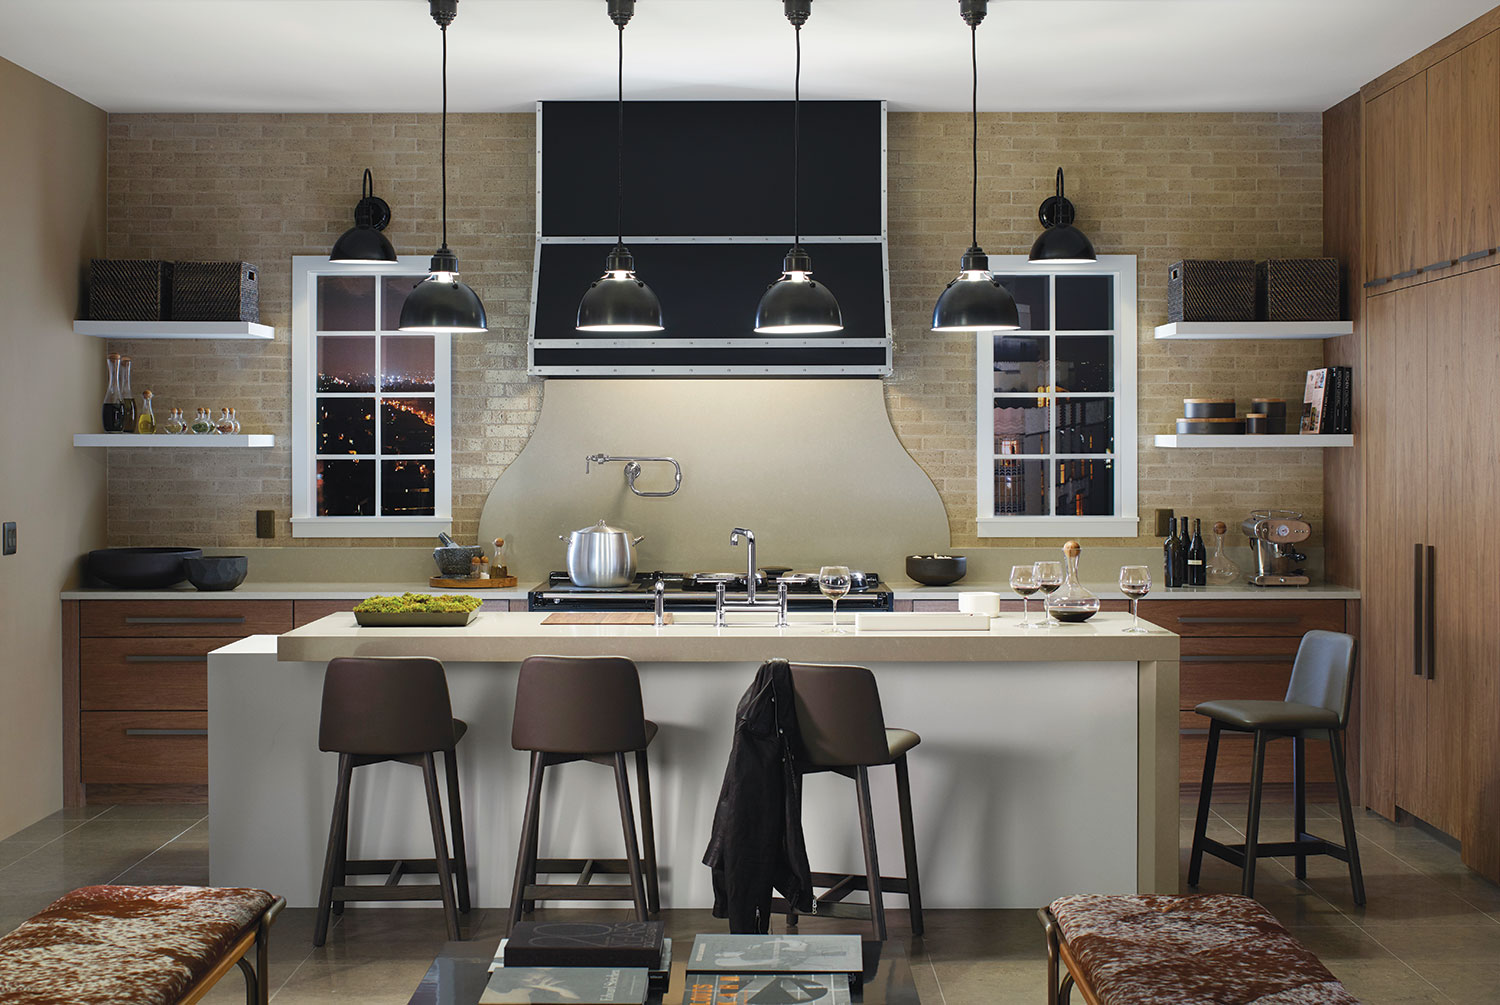 kitchen design for cooks. Concept kitchen by Mark Williams for Silestone  Benjamin Moore and Kohler How male cooks are influencing the way today s kitchens